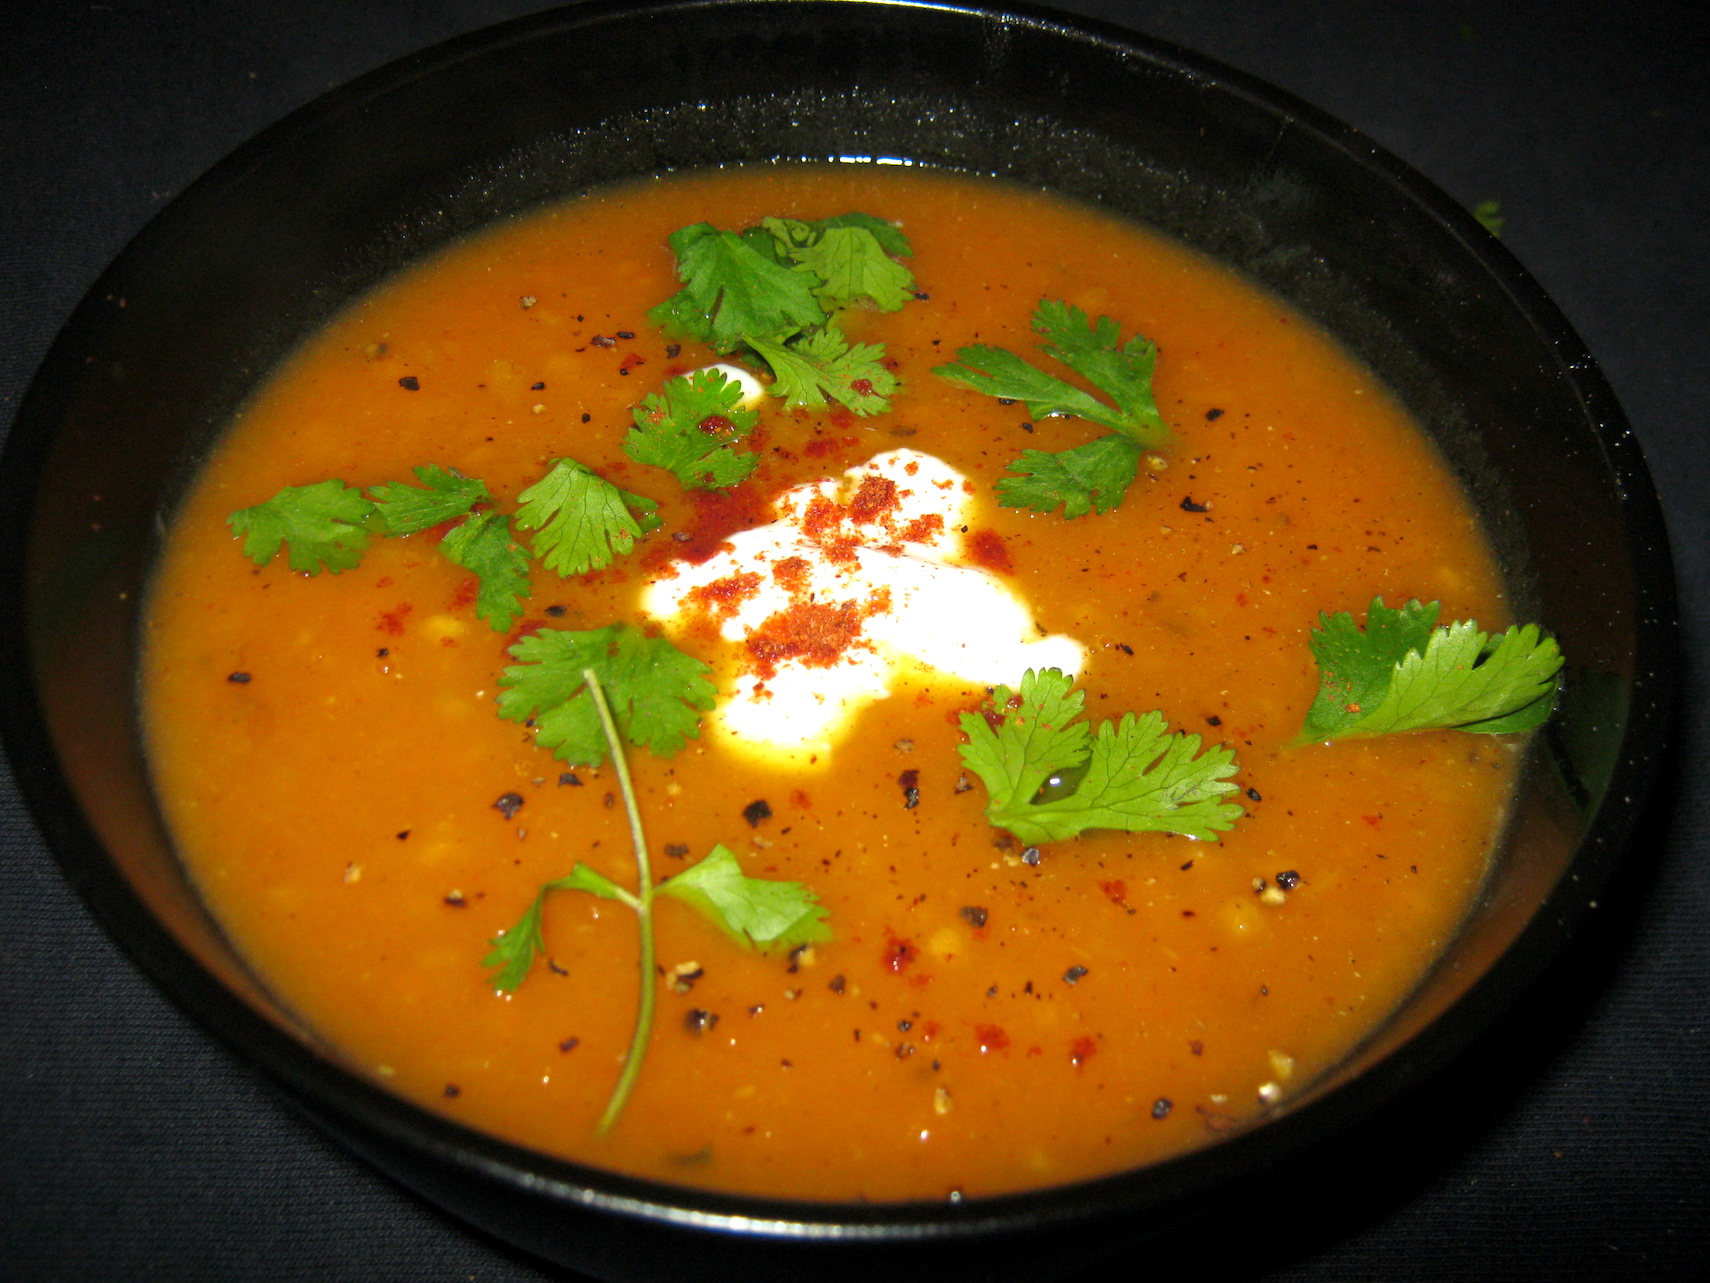 Sweet Potato Soup als Alicia